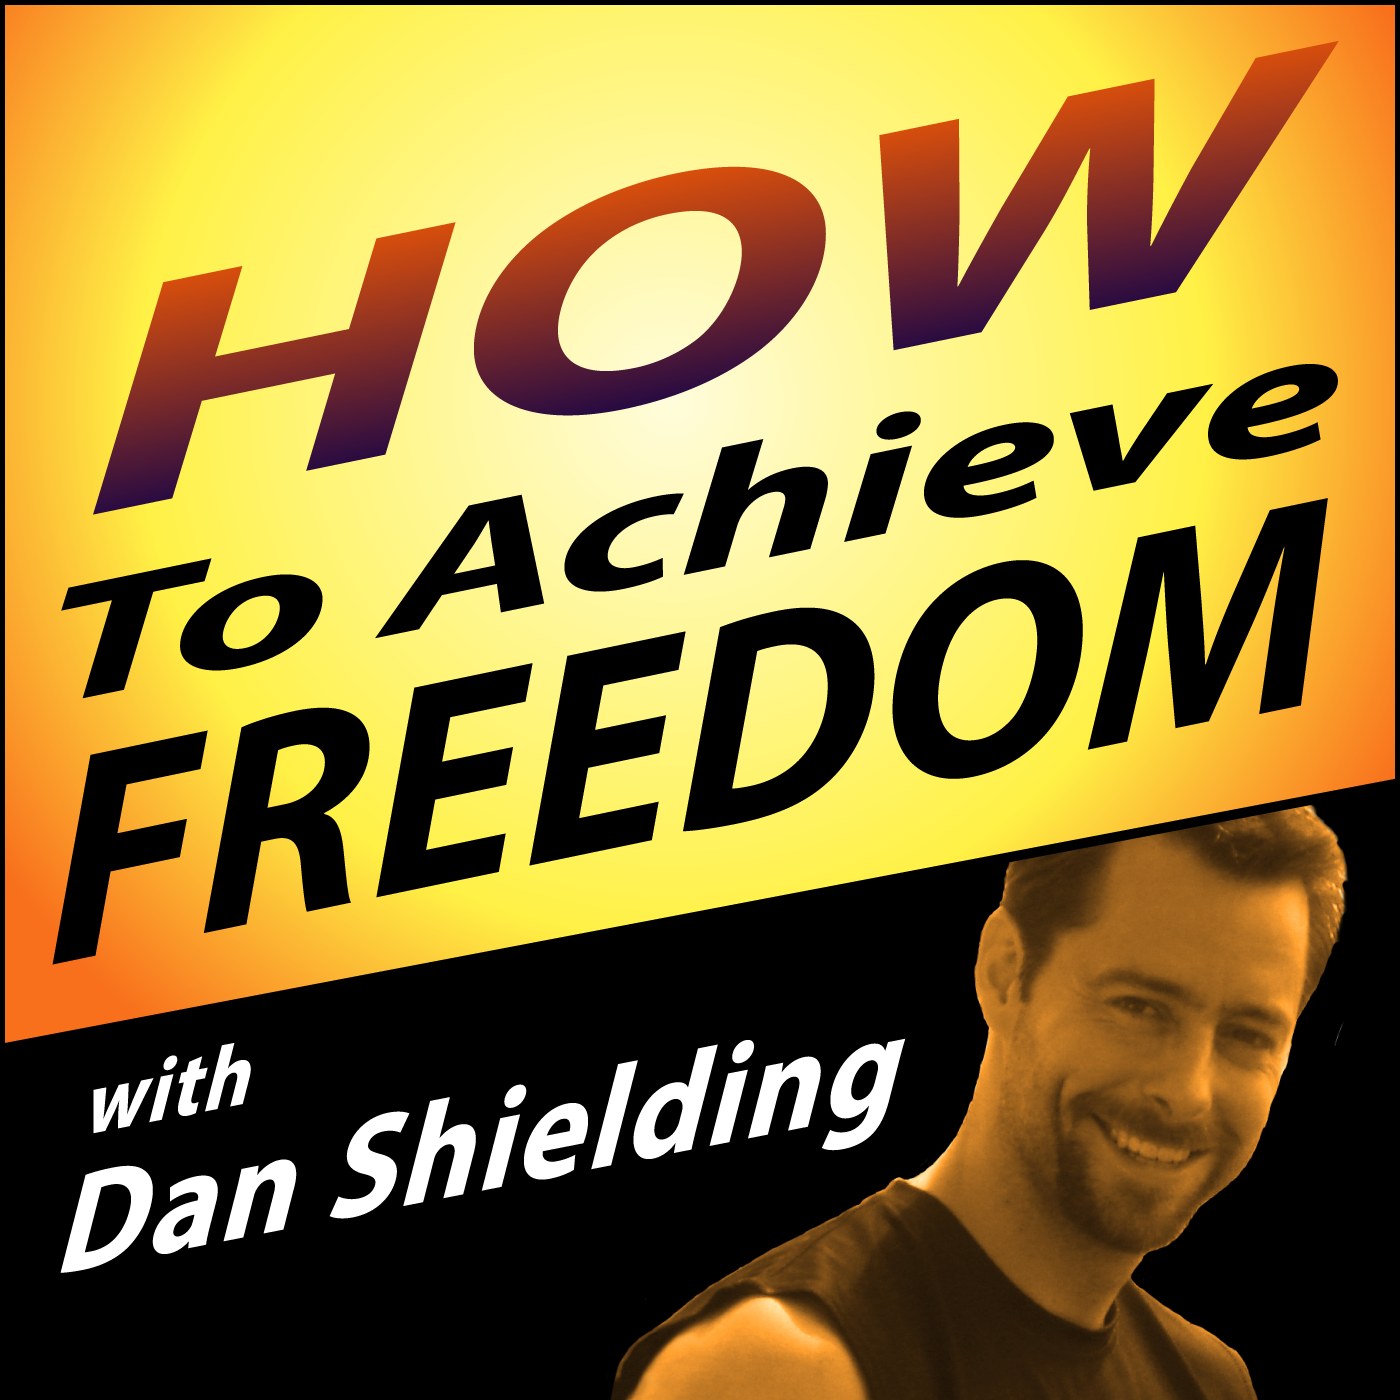 How To Achieve Freedom